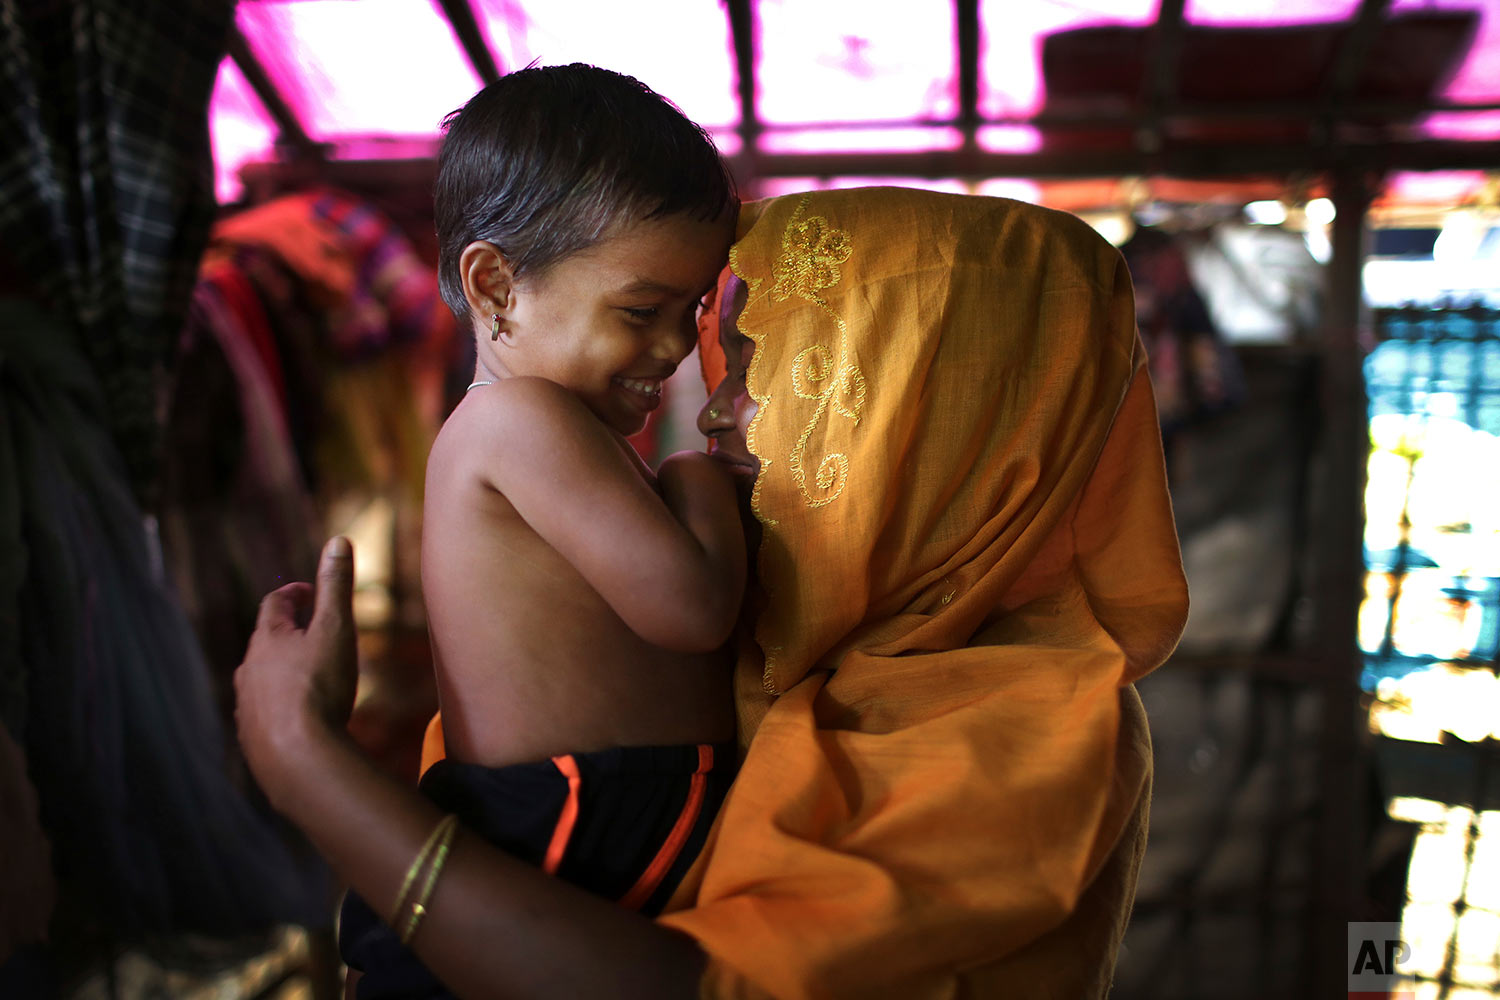 In this Wednesday, Nov. 22, 2017, photo, R, 28, mother of six, who says she was raped by members of Myanmar's armed forces in late August, caresses her daughter while being photographed in her tent in Kutupalong refugee camp in Bangladesh.  (AP Photo/Wong Maye-E)